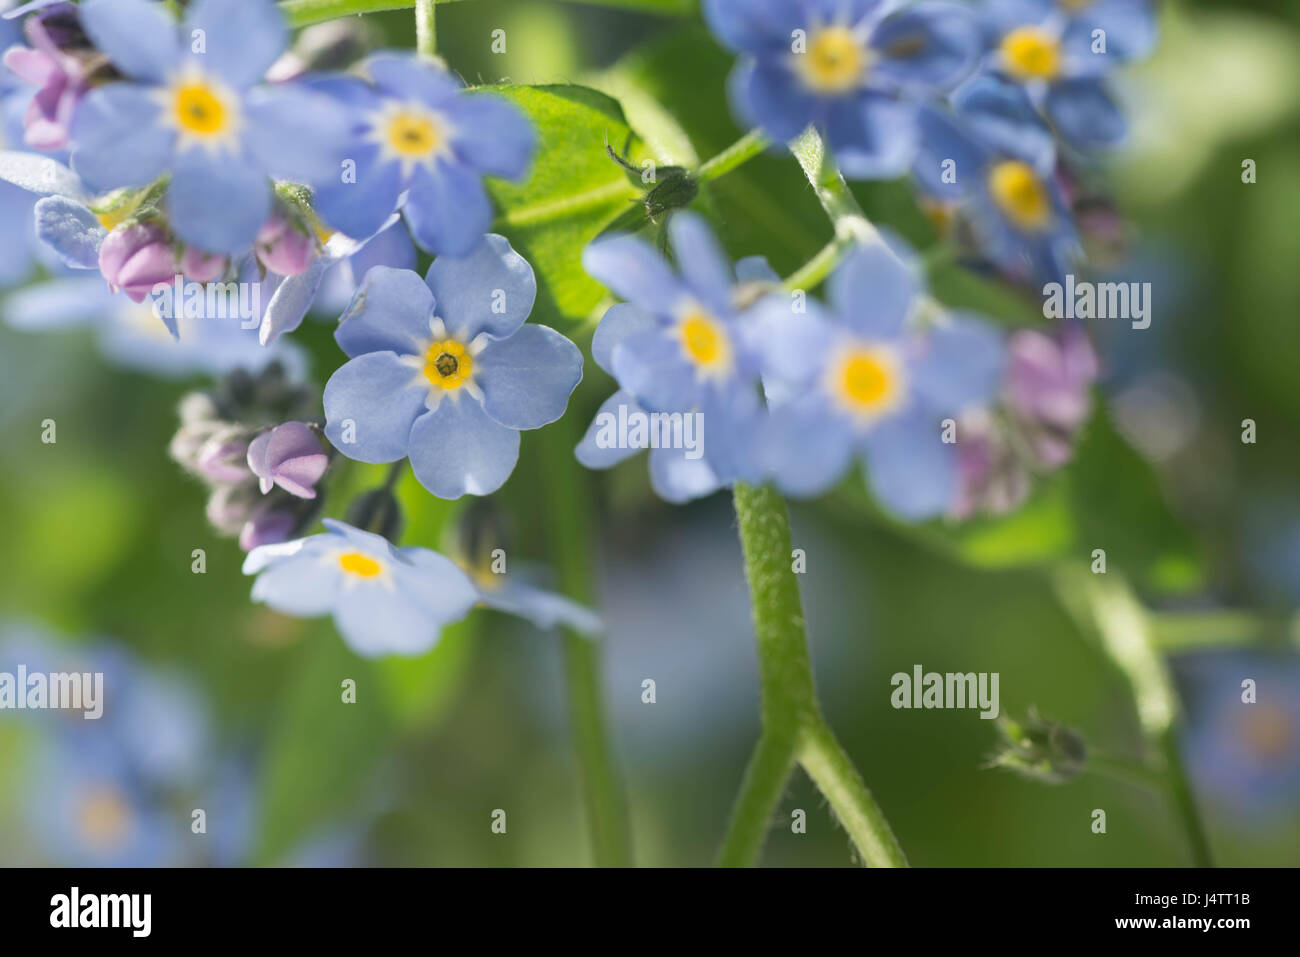 Forget Me Not Blue Spring Small Flowers In Bunch Stock Photo